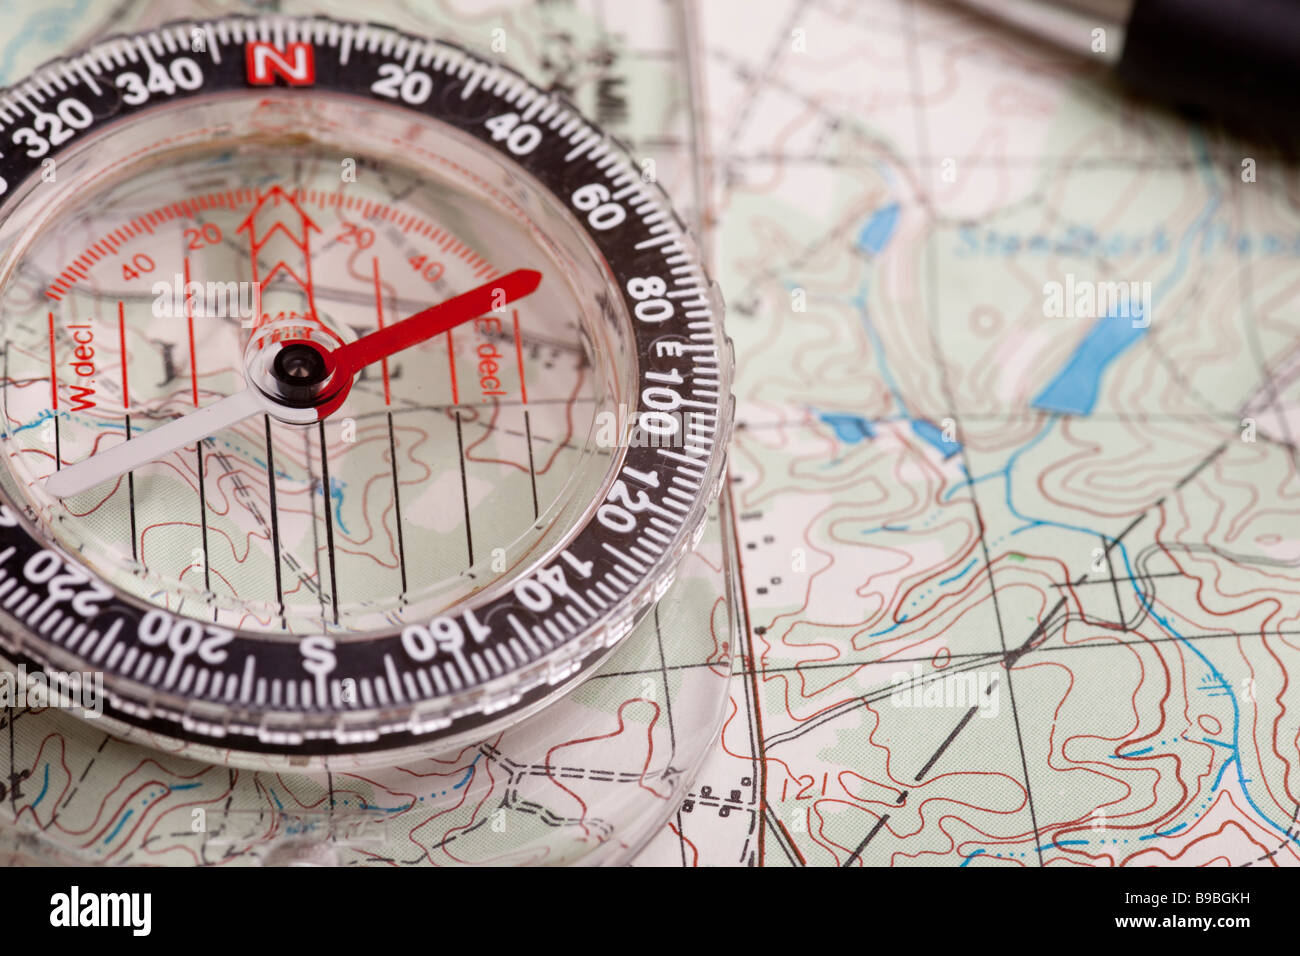 A compass on a topographical map showing terrain features - Stock Image